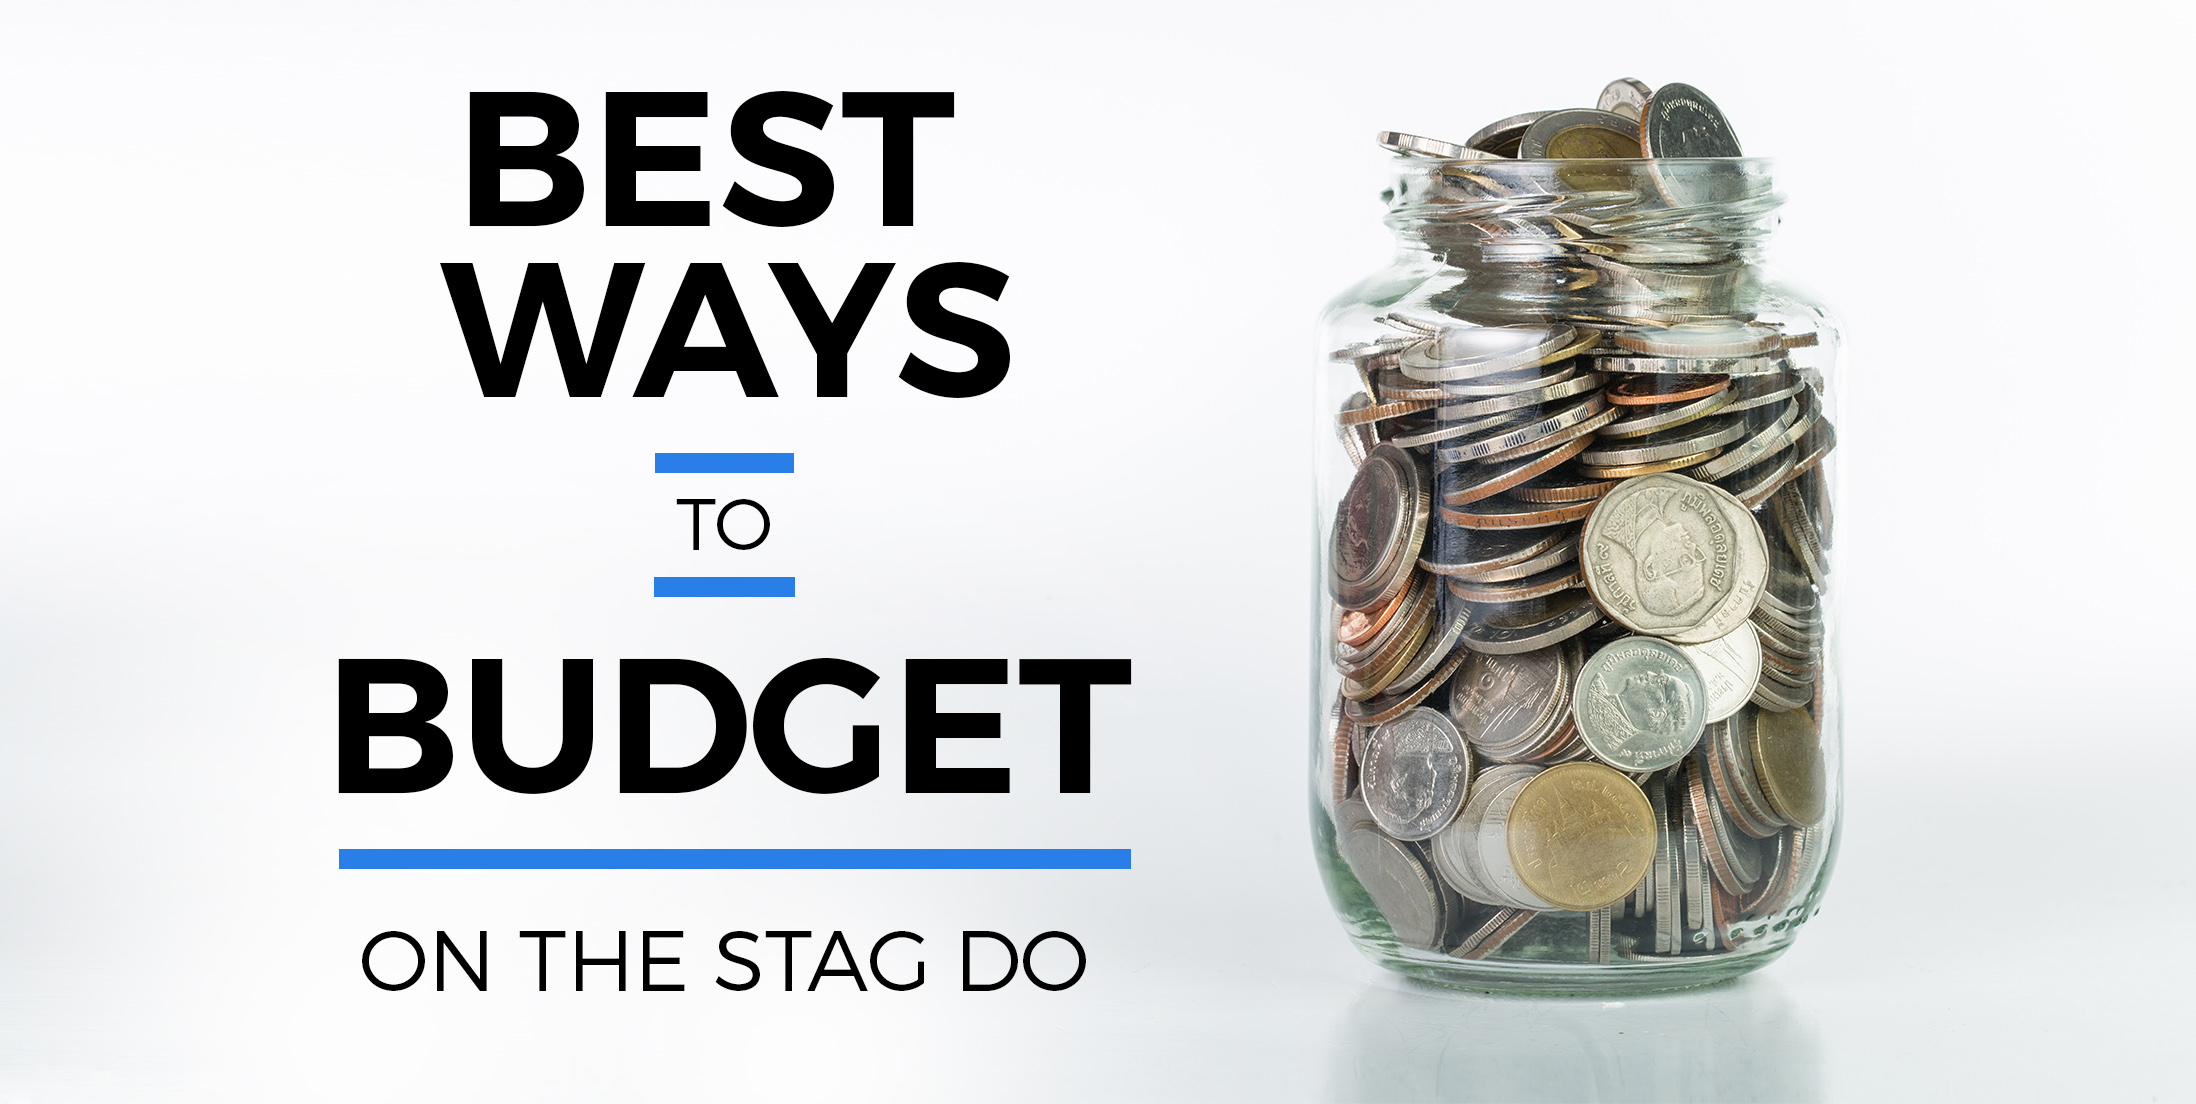 Best Ways to Budget on the Stag Do